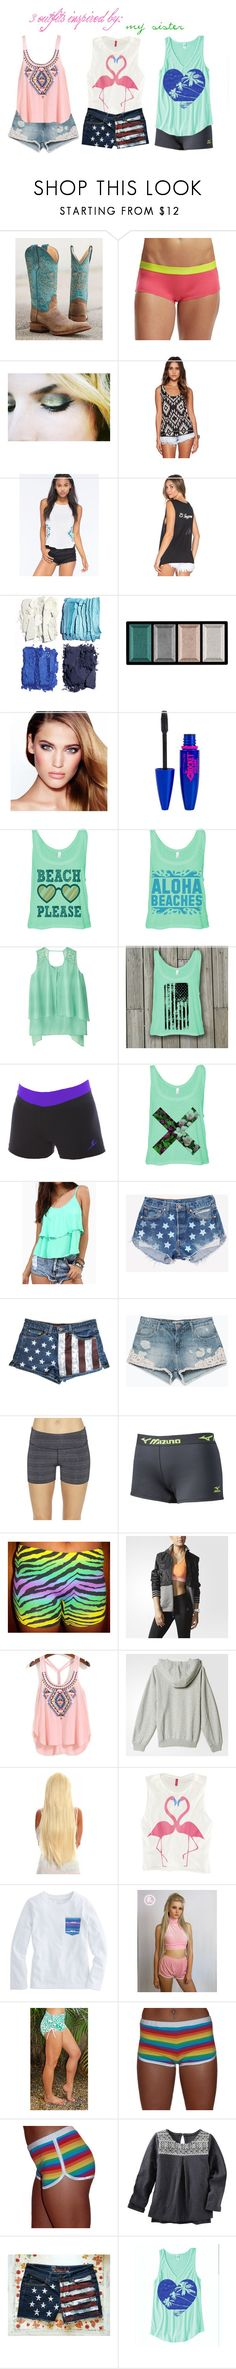 """""""0256"""" by doglover43 ❤ liked on Polyvore featuring Circle G, Icebreaker, Wildfox, Billabong, Beach Riot, Illamasqua, Clé de Peau Beauté, Maybelline, Zara and Beyond Yoga"""